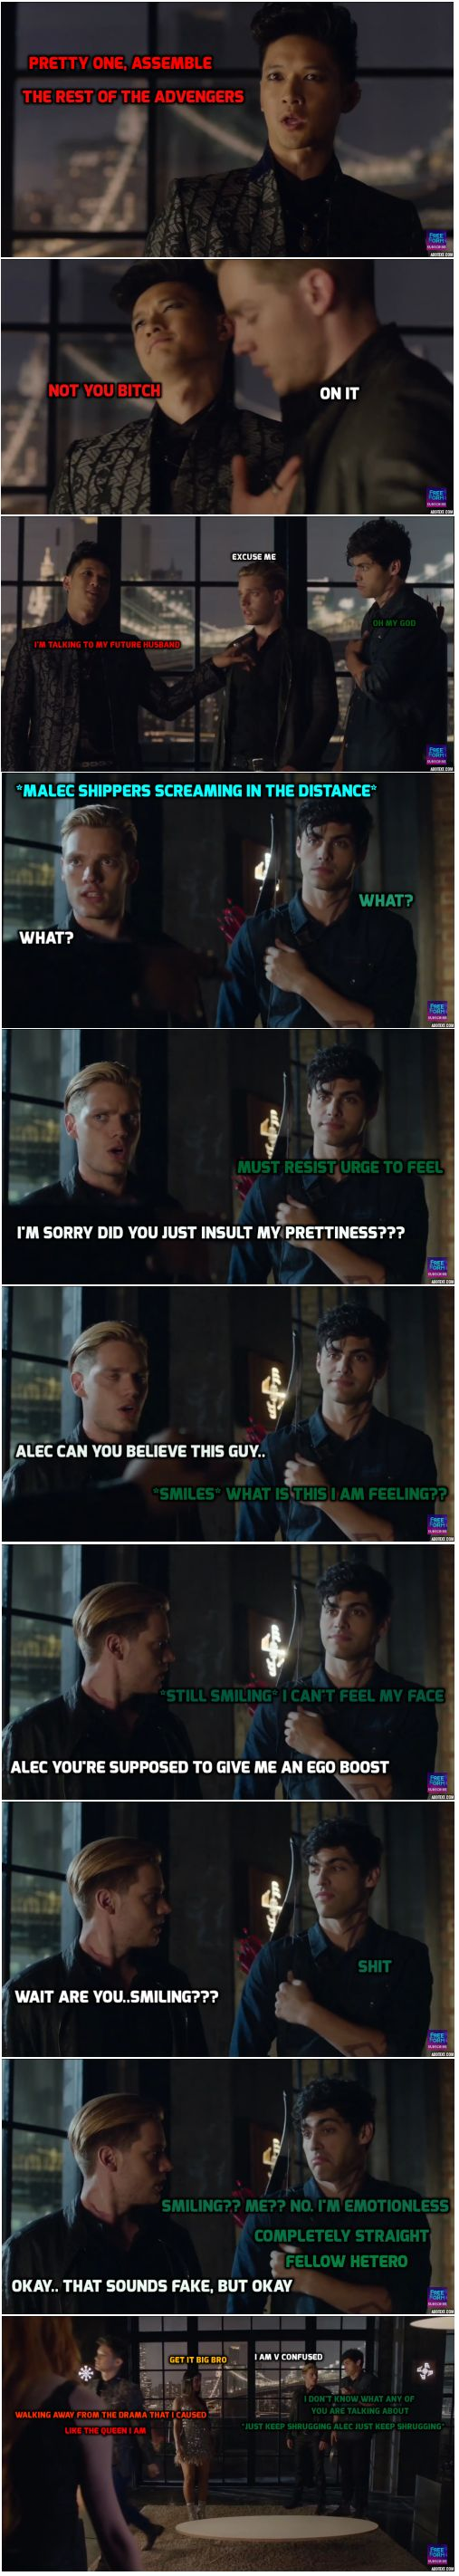 Made by halliwellxx ... the mortal instruments, isabelle lightwood, clarissa 'clary' fray, jace herondale, alexander 'alec' lightwood, magnus bane